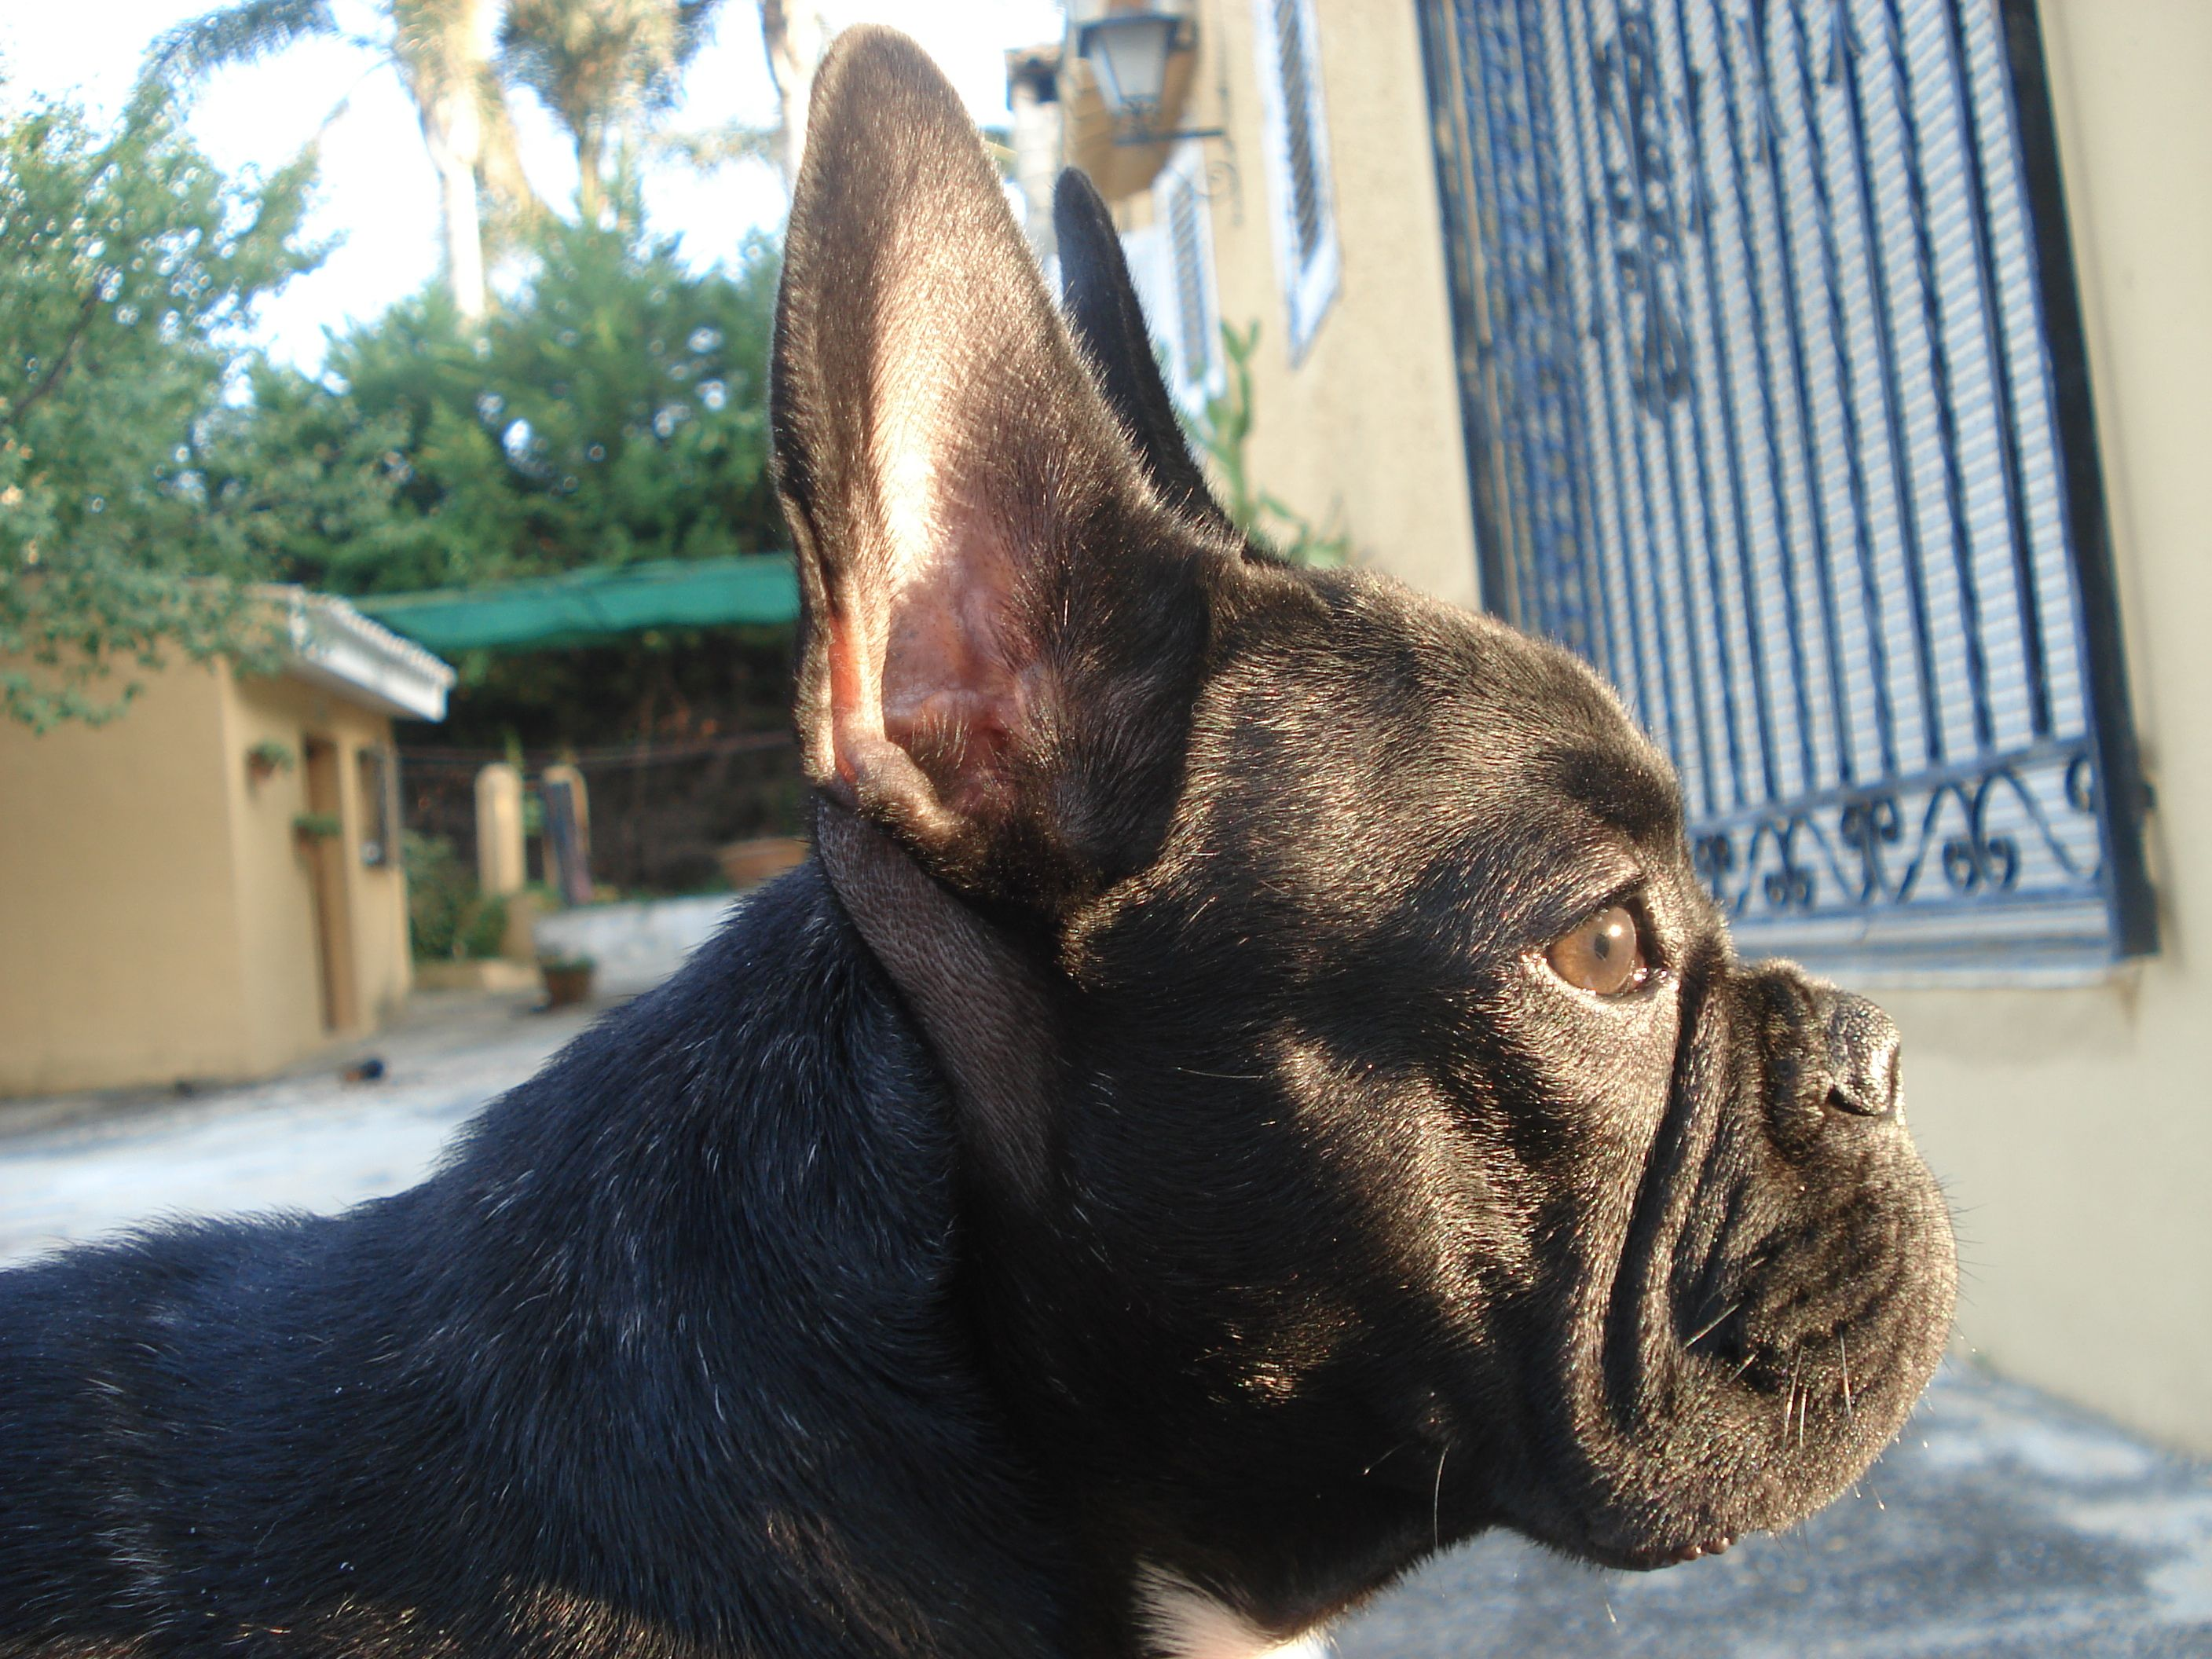 mi frenchie al atardecer! French Bulldog ️ (With images